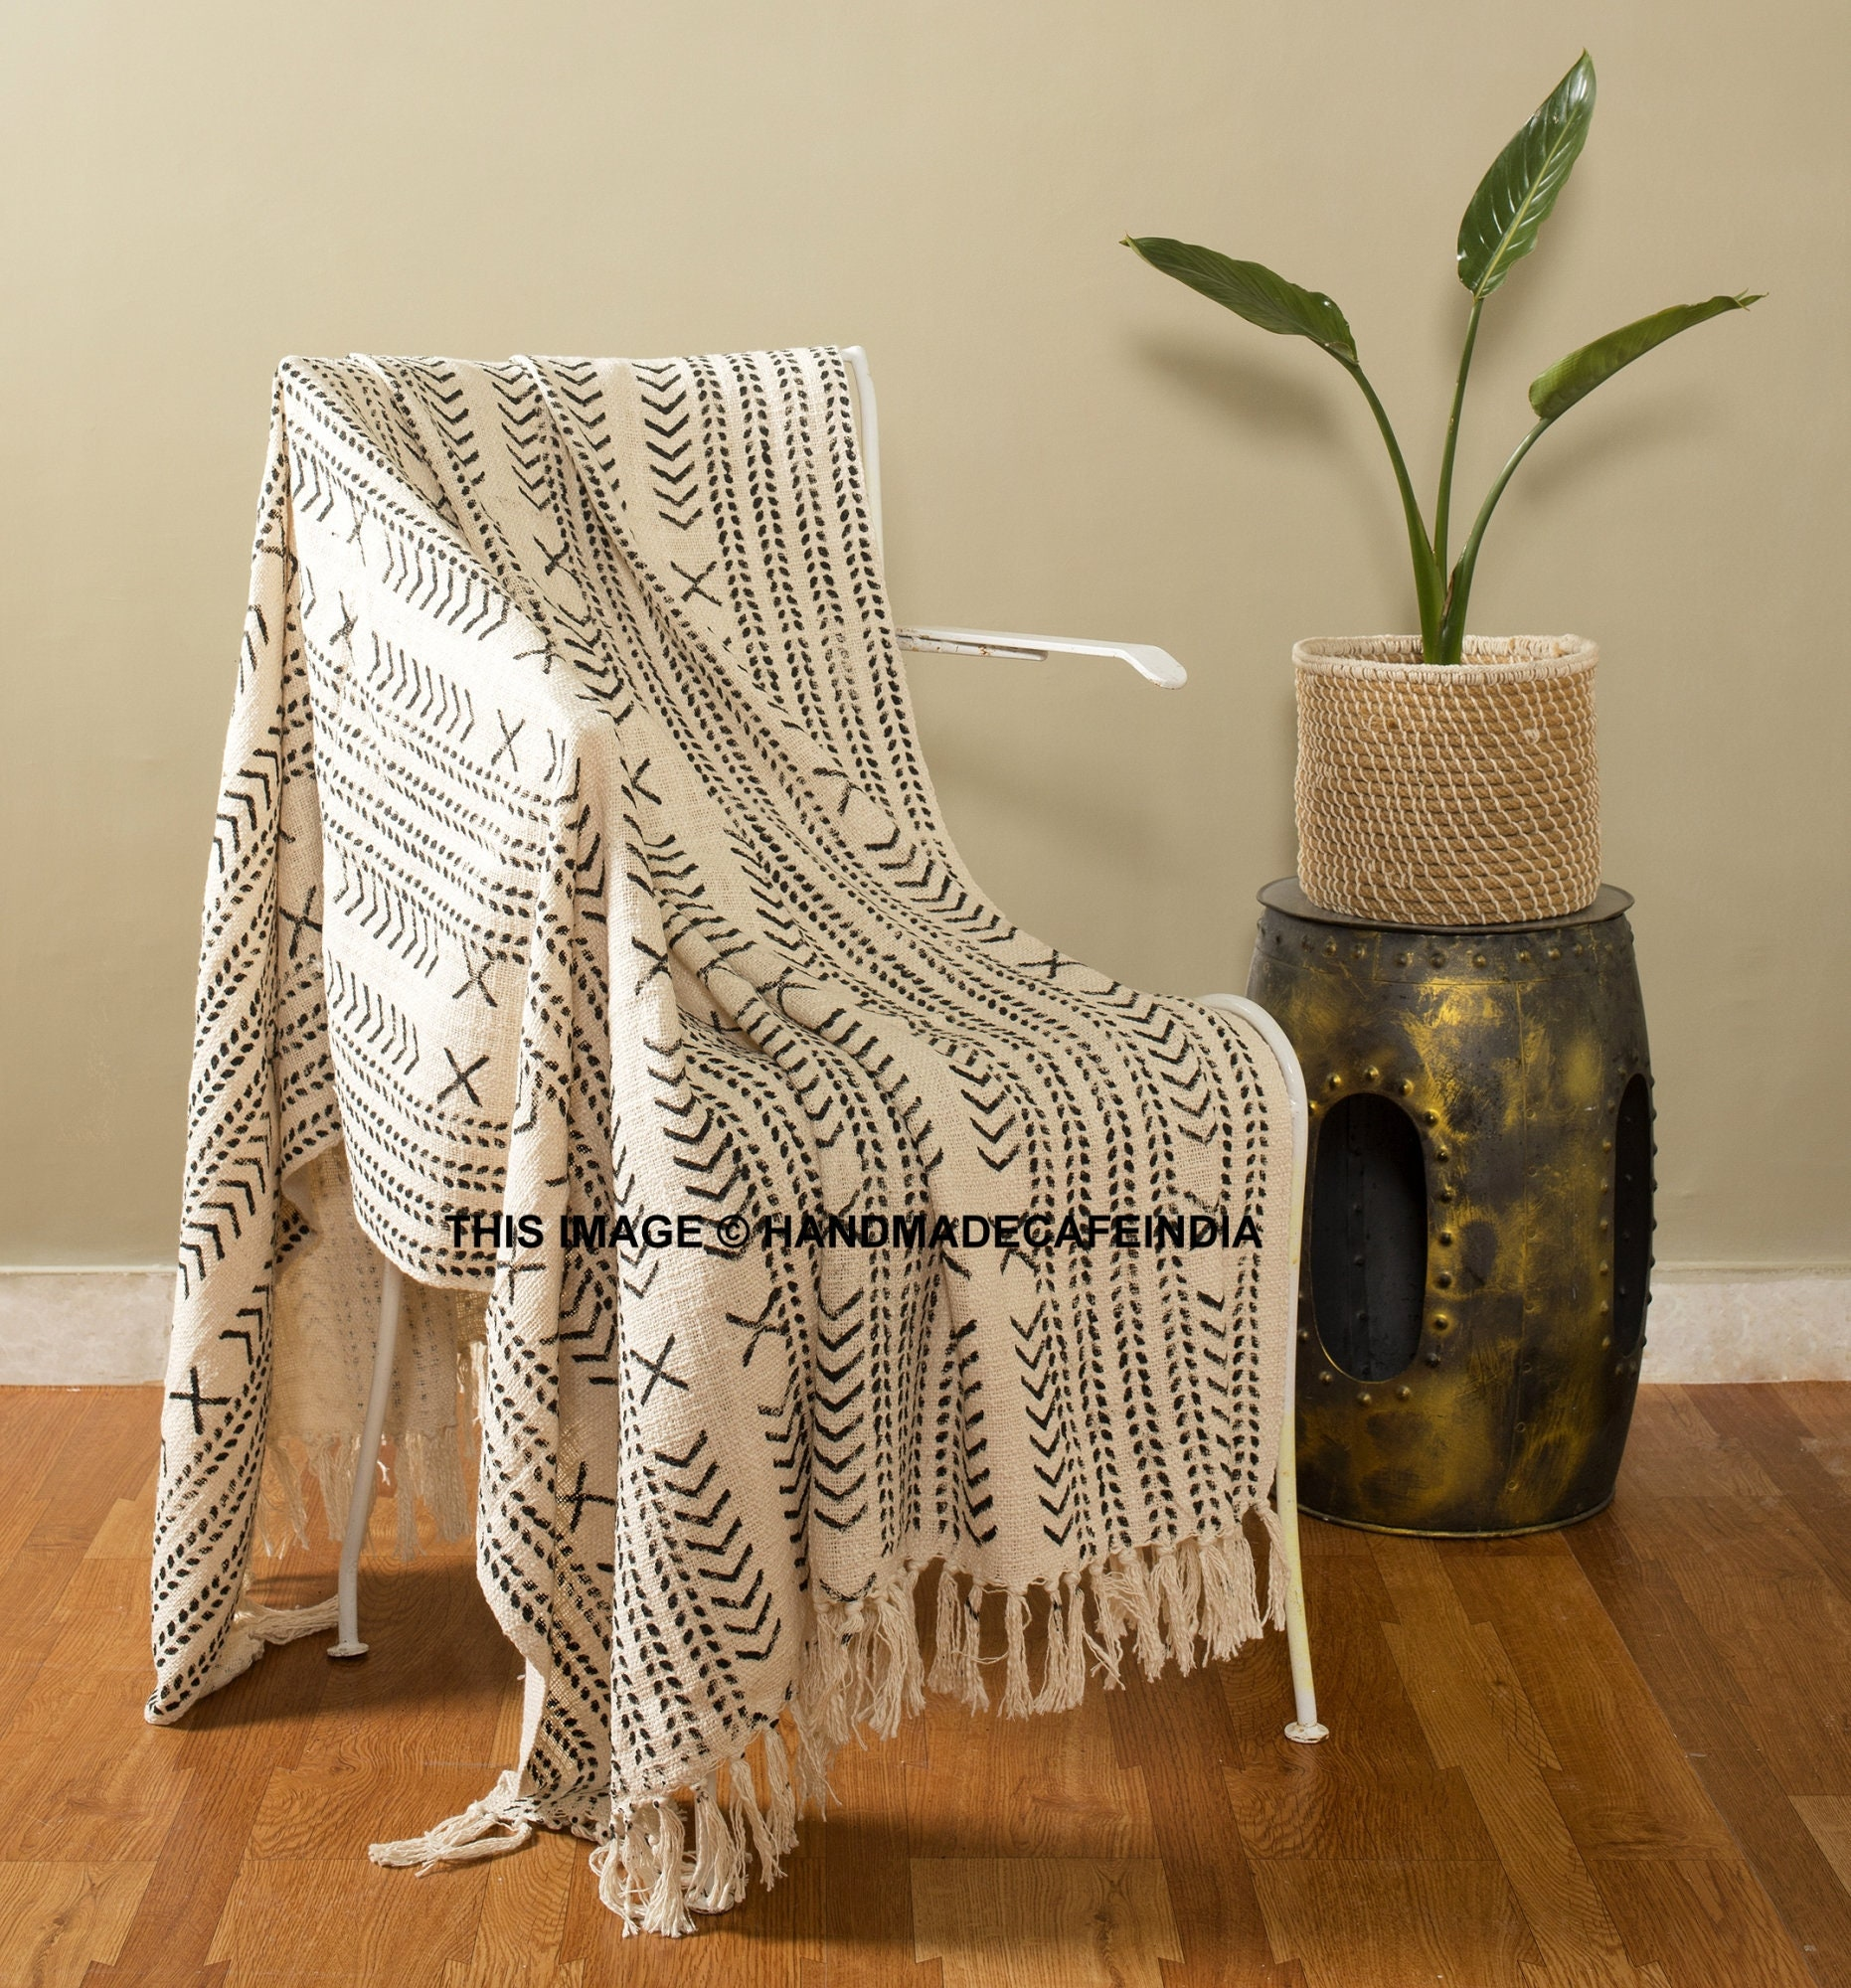 Details about  /Ethnic Cotton Mudcloth Throw Handloomed Decorative Throw Blanket With Tassels